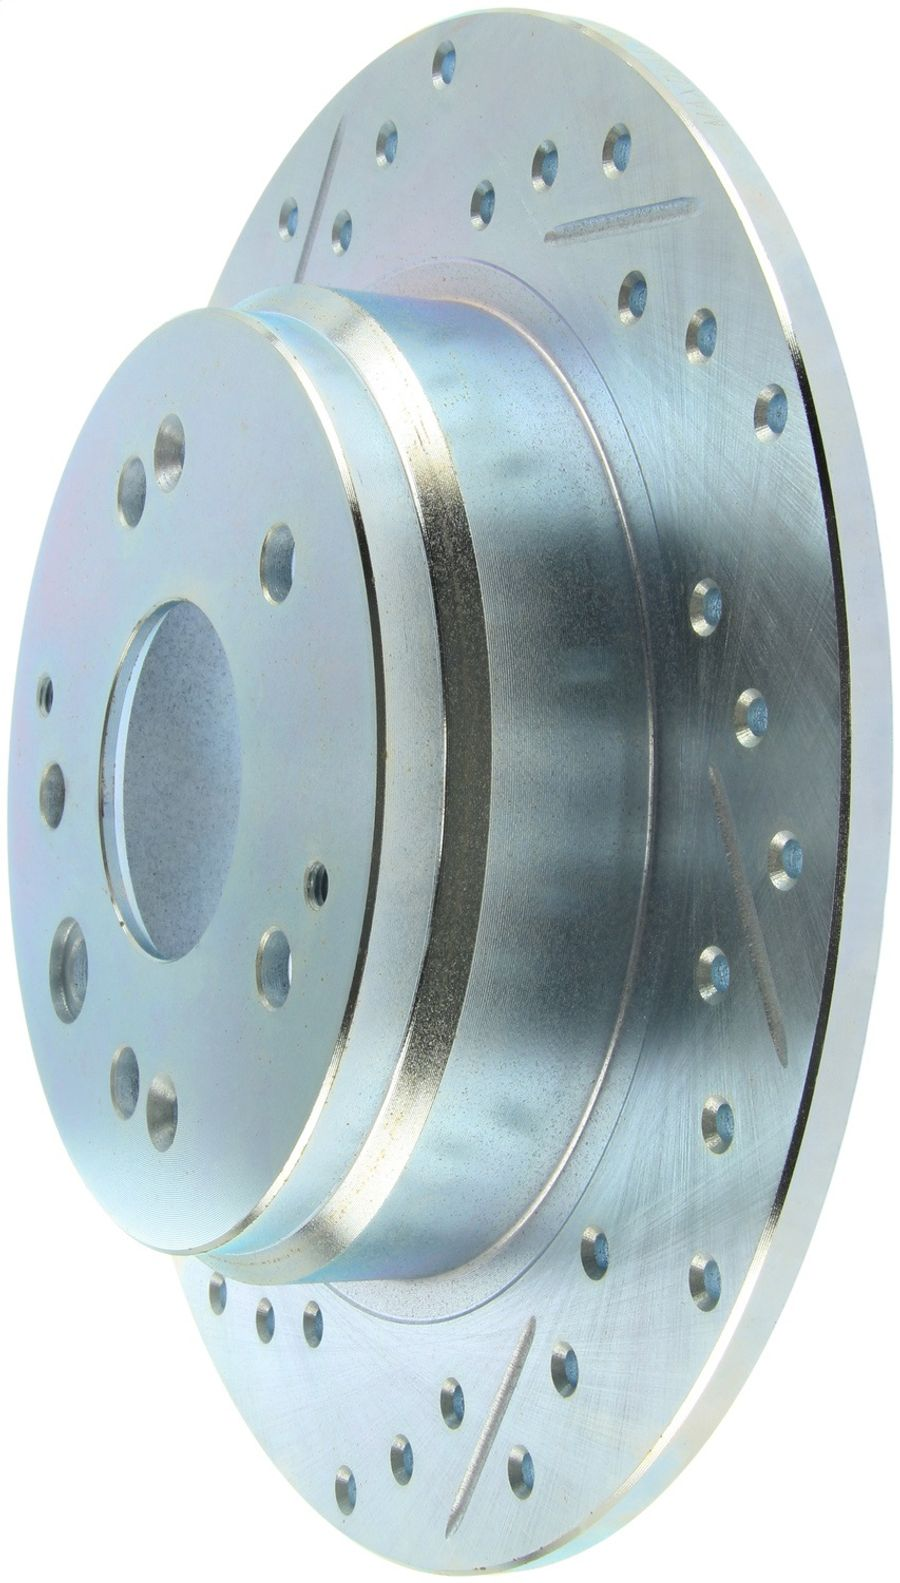 StopTech Disc Brake Rotors Brakes Select Sport Drilled/Slotted Rotor 227.40061R